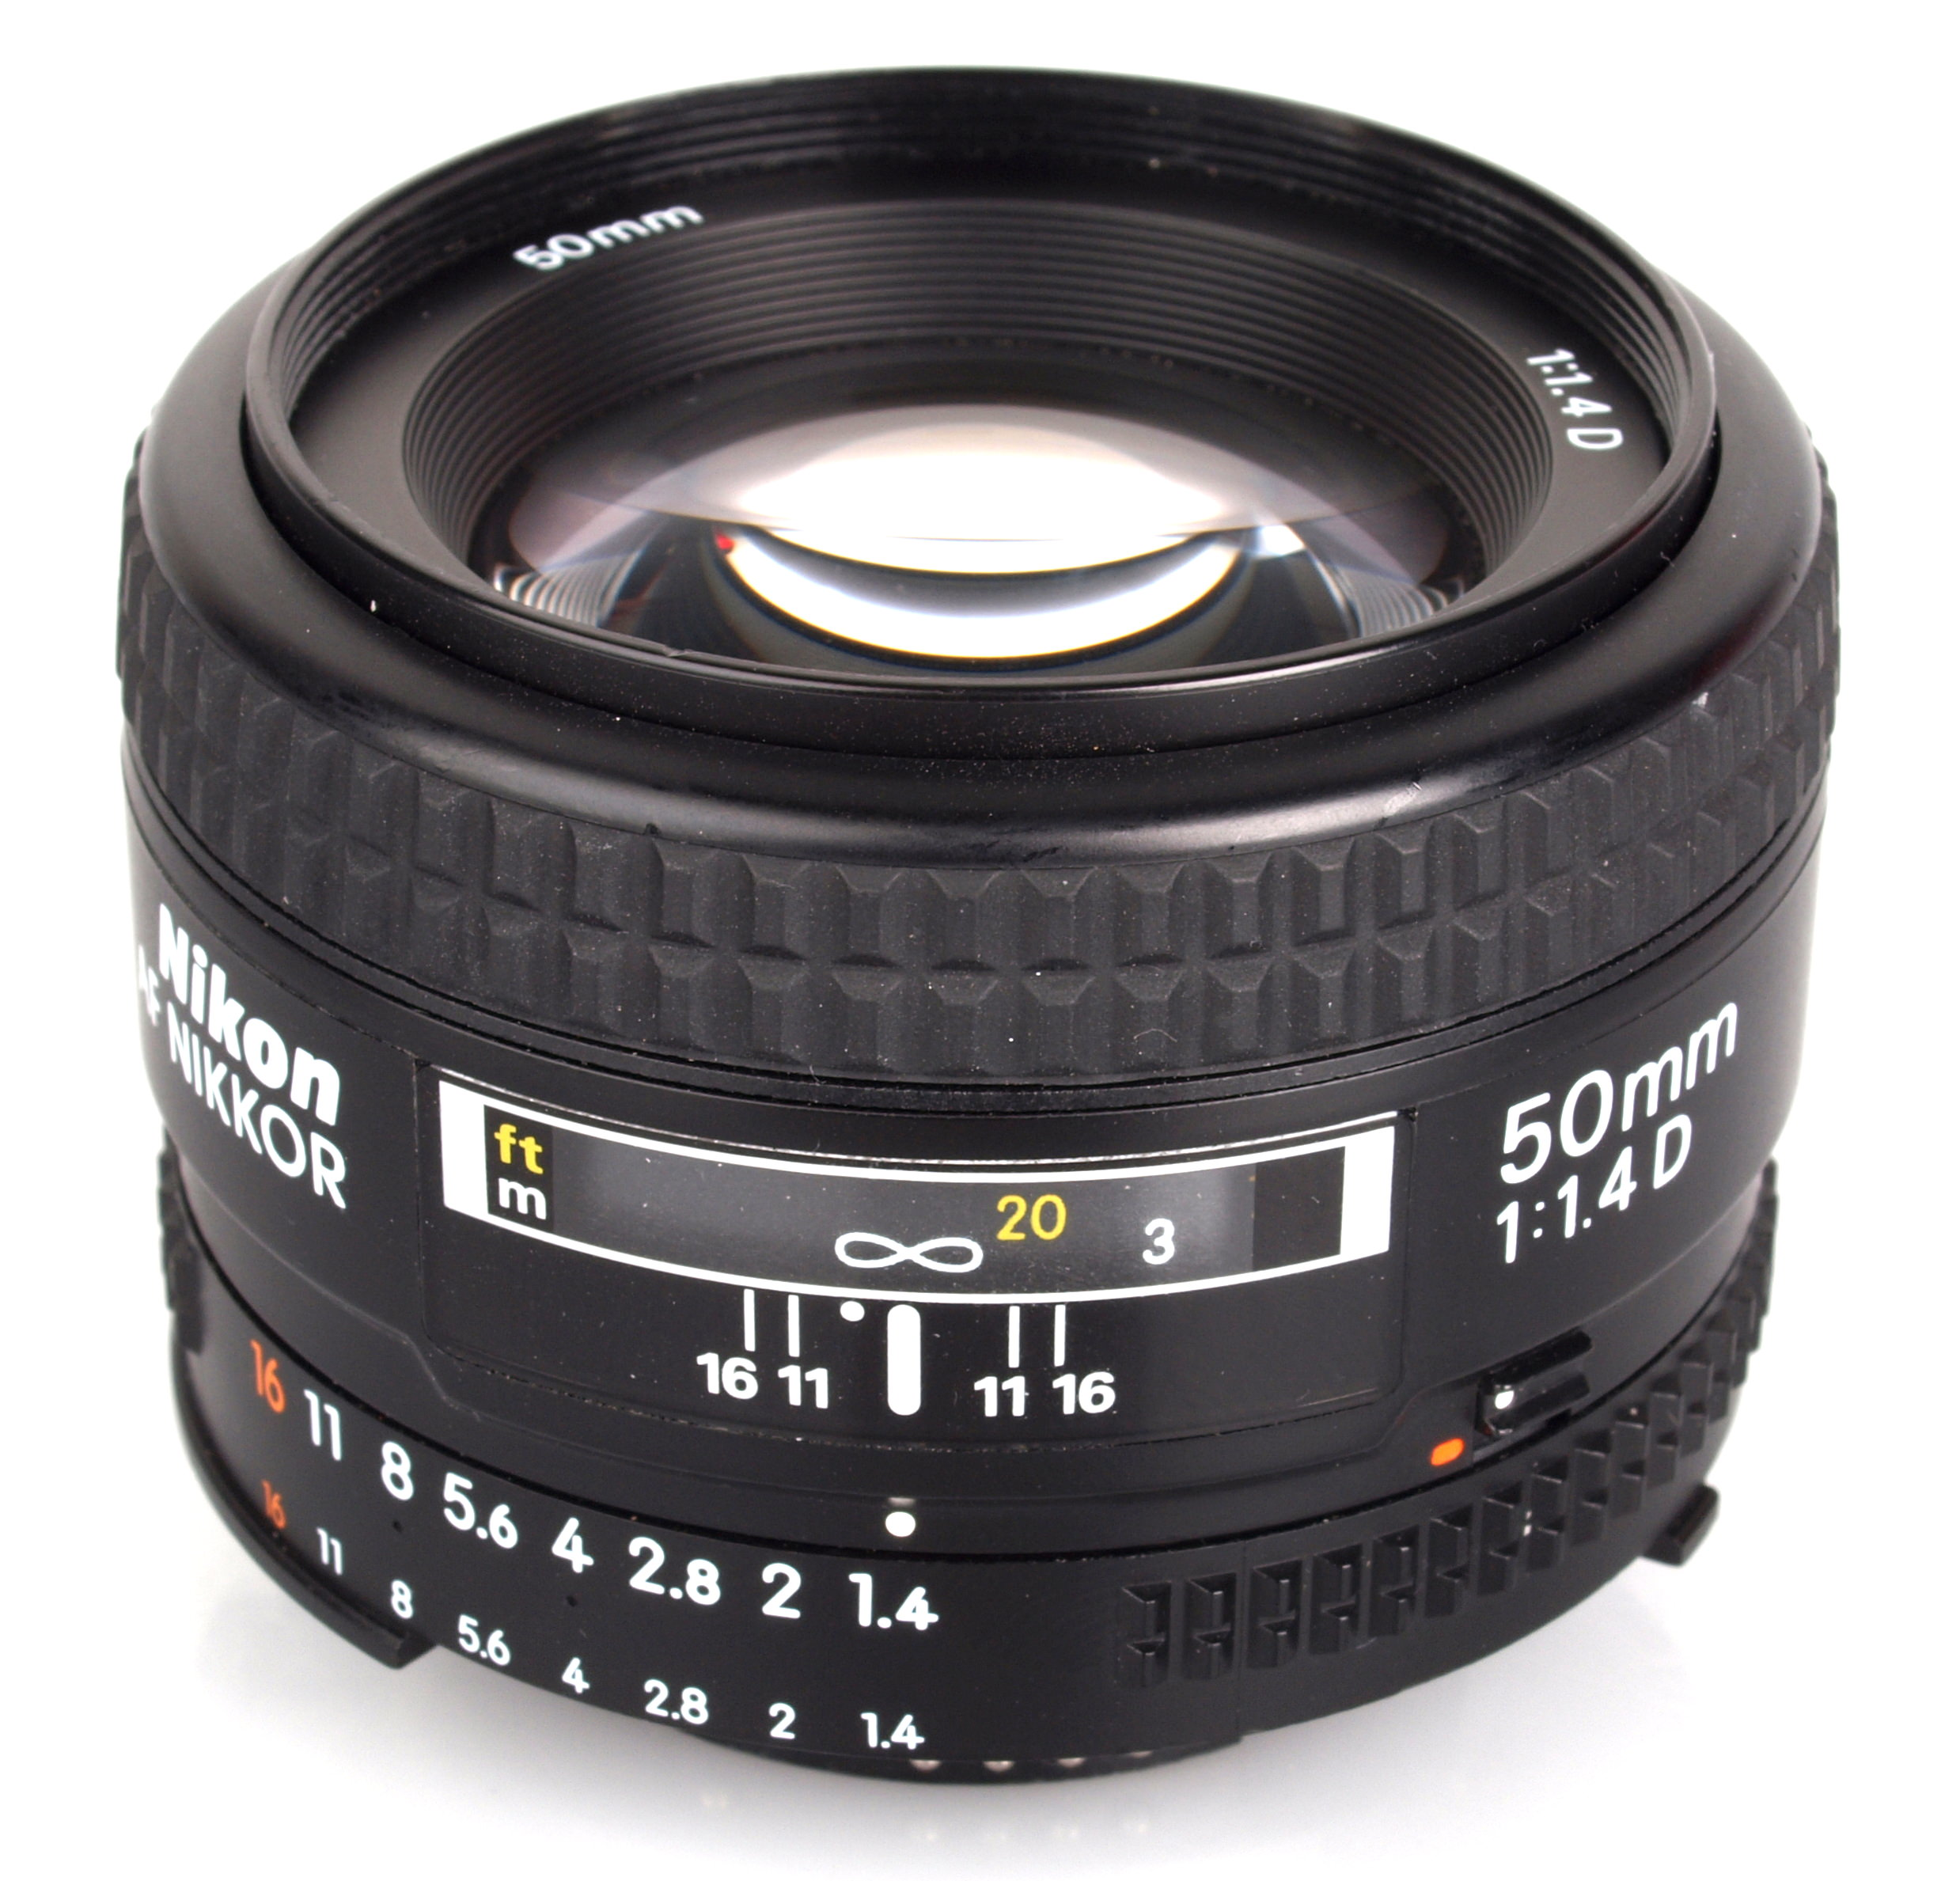 Nikon AF Nikkor 50mm f 1.4D Lens Review  9928d5dea4c